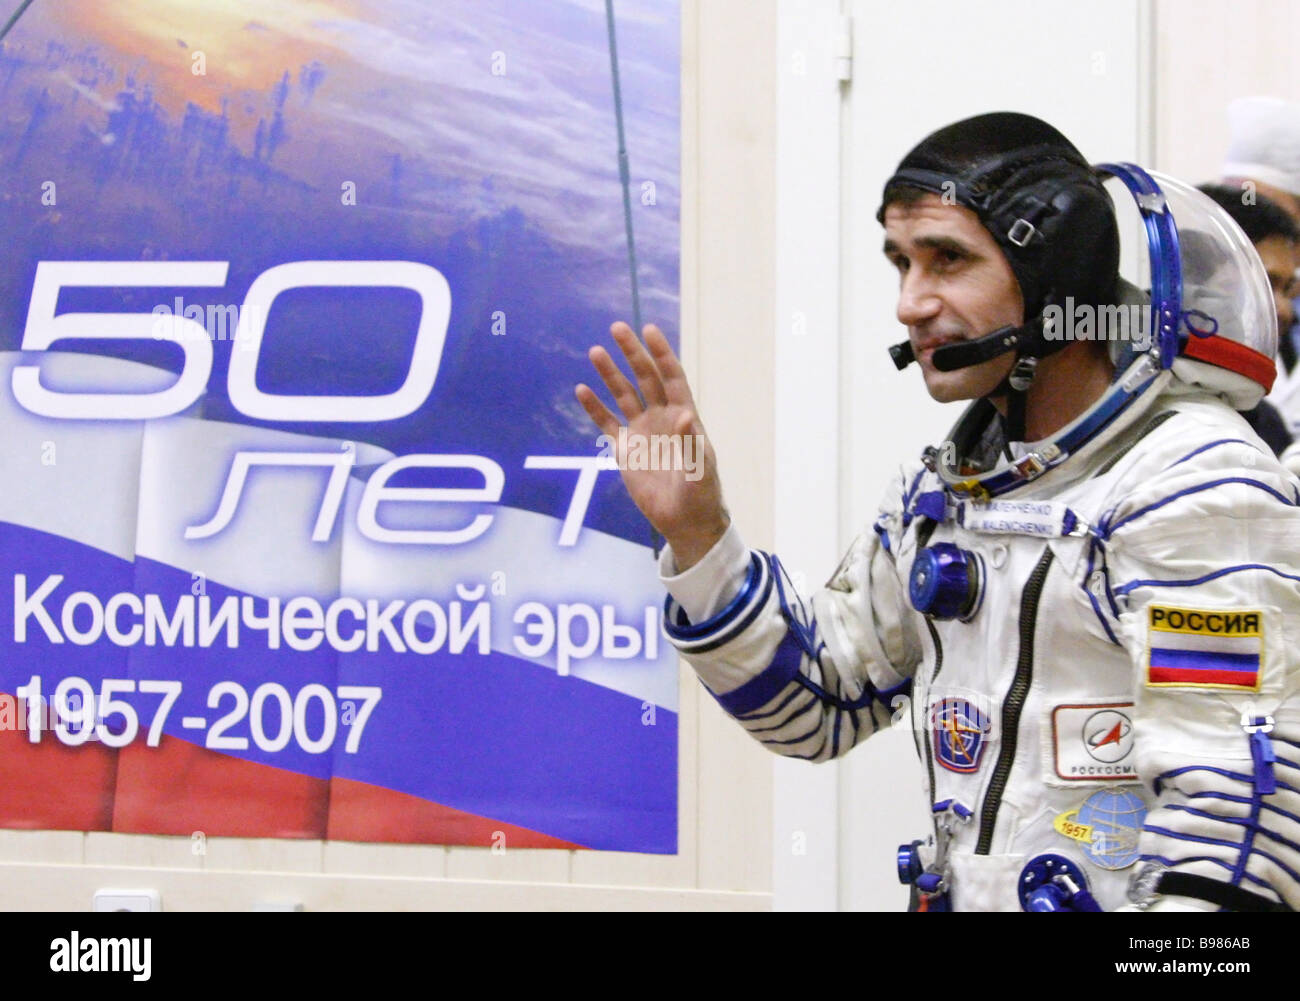 Russian cosmonaut Yuri Malenchenko during the check of spacesuits before the launch of the Soyuz TM 11 rocket - Stock Image